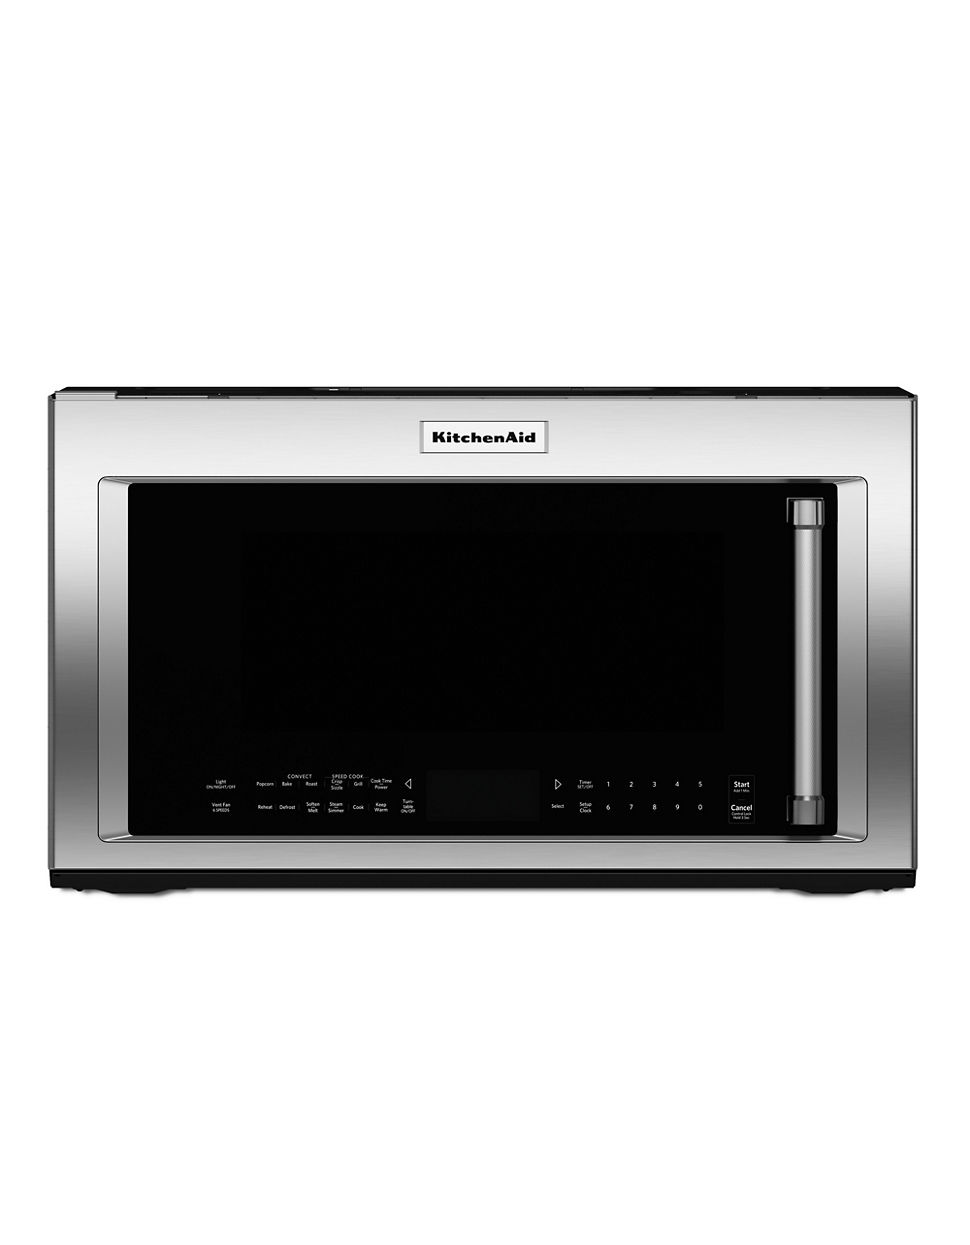 YKMHP519ES 30-Inch 1000-Watt Convection Microwave with High-Speed ...